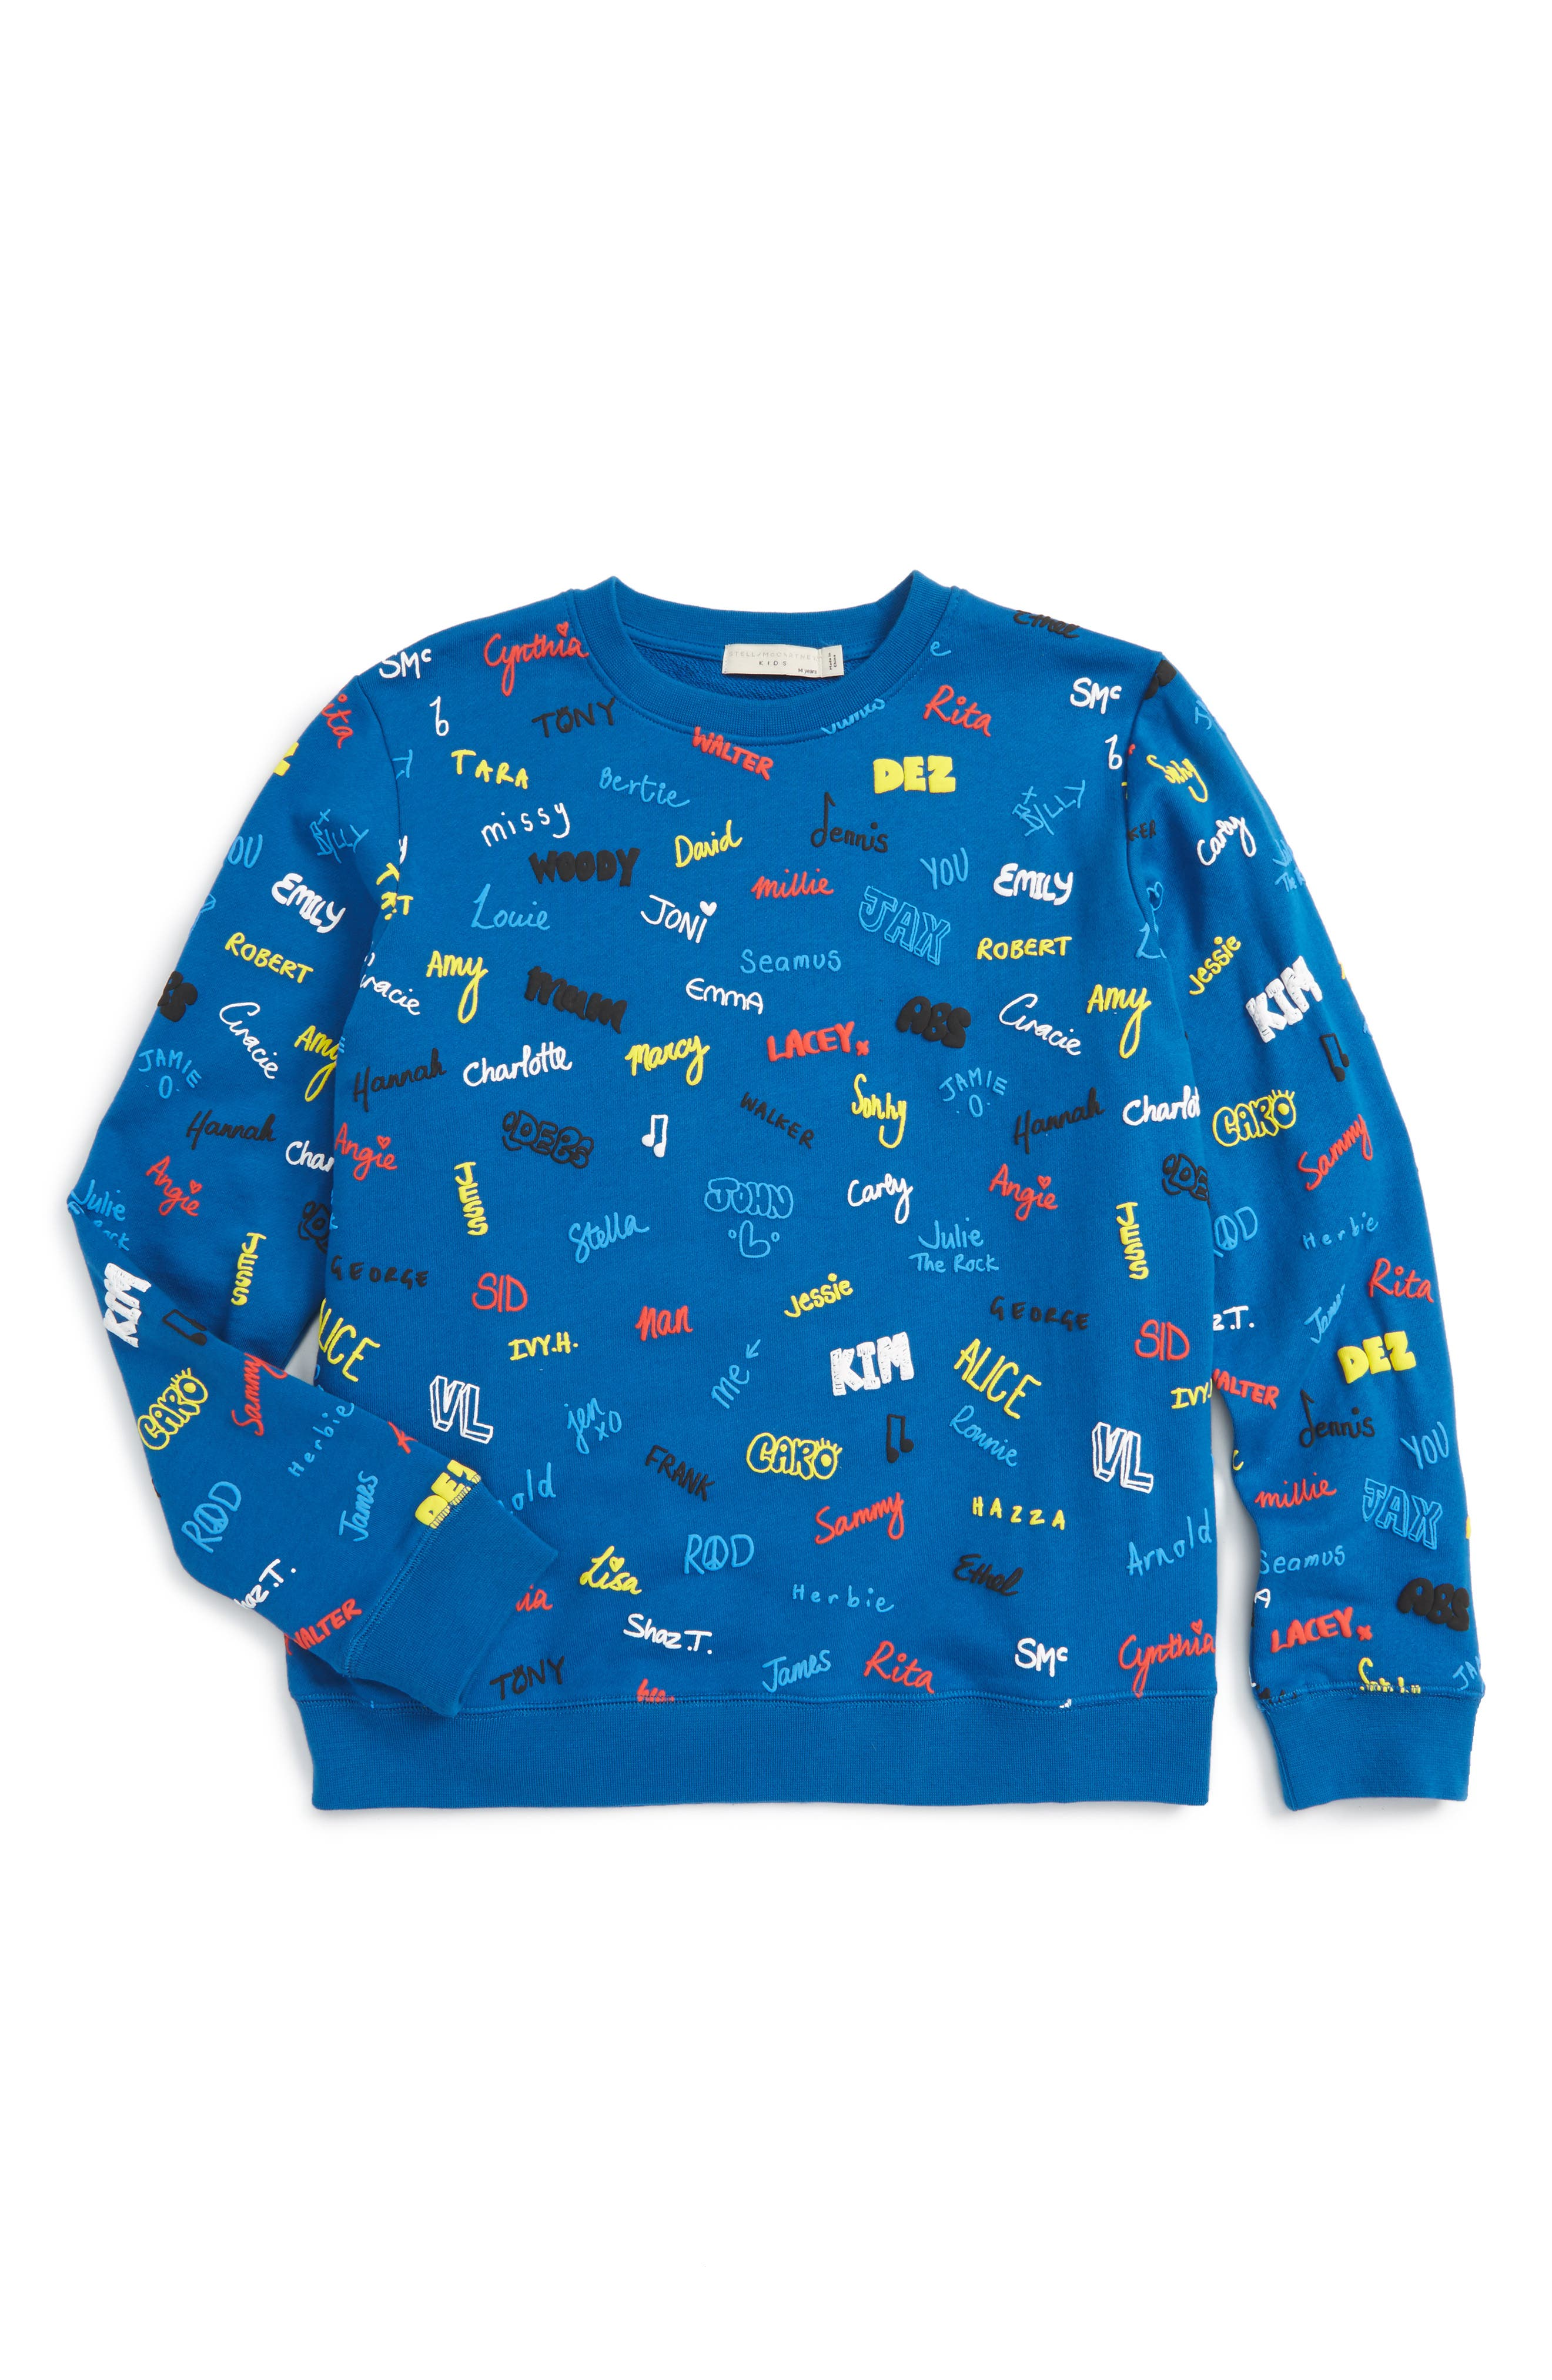 STELLA MCCARTNEY KIDS Stella McCartney Biz Name Print